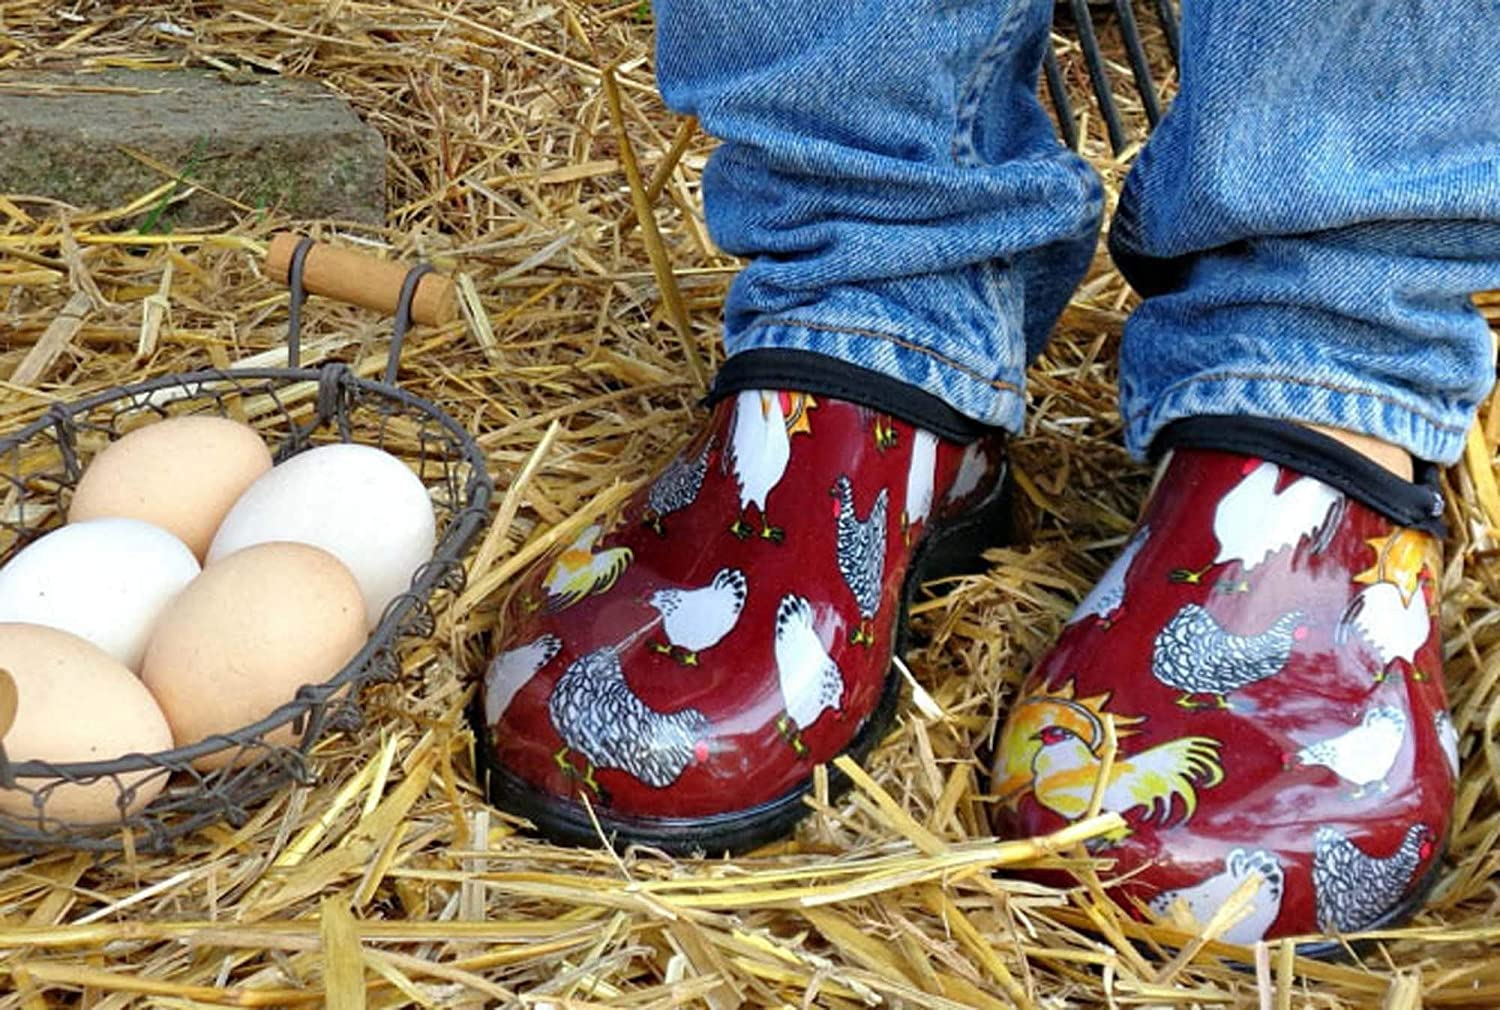 Size 8 Sloggers Womens Waterproof  Rain and Garden Shoe with Comfort Insole Chickens Barn Red Style 5116CBR08 Renewed